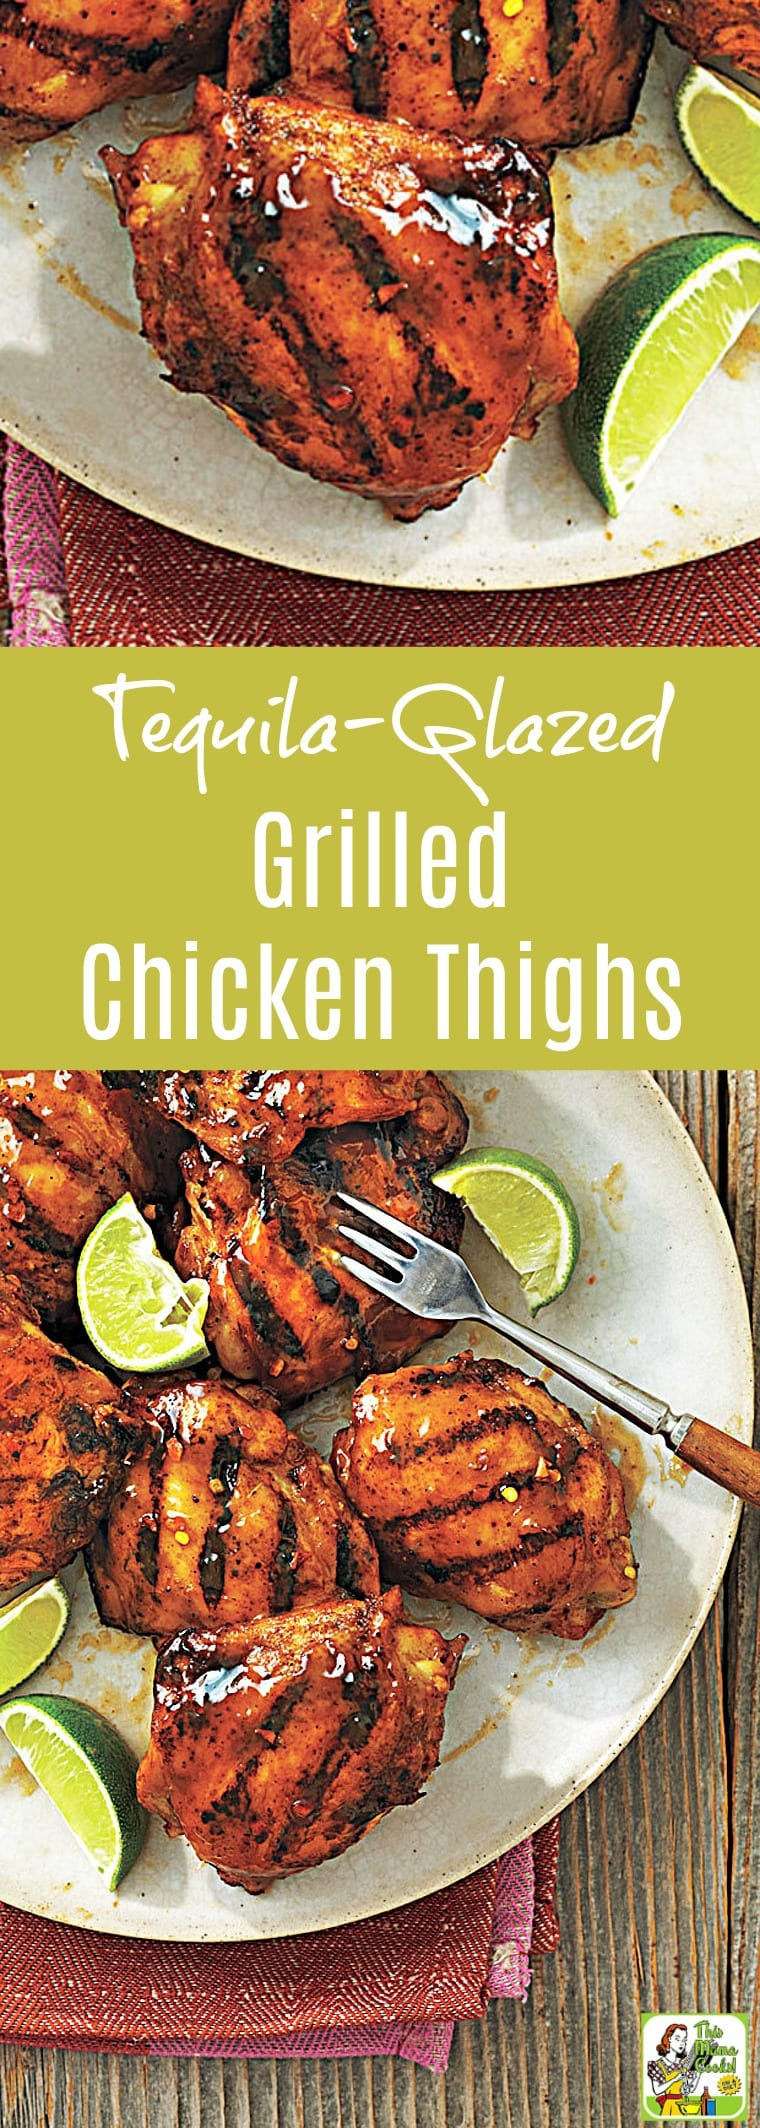 Looking for the best grilled chicken thigh recipe? Click to get this Tequila-Glazed Grilled Chicken Thighs recipe. This grilled skinless boneless chicken thighs recipe is naturally gluten free and easy to make for weeknight dinners or your next cookout grilling party.